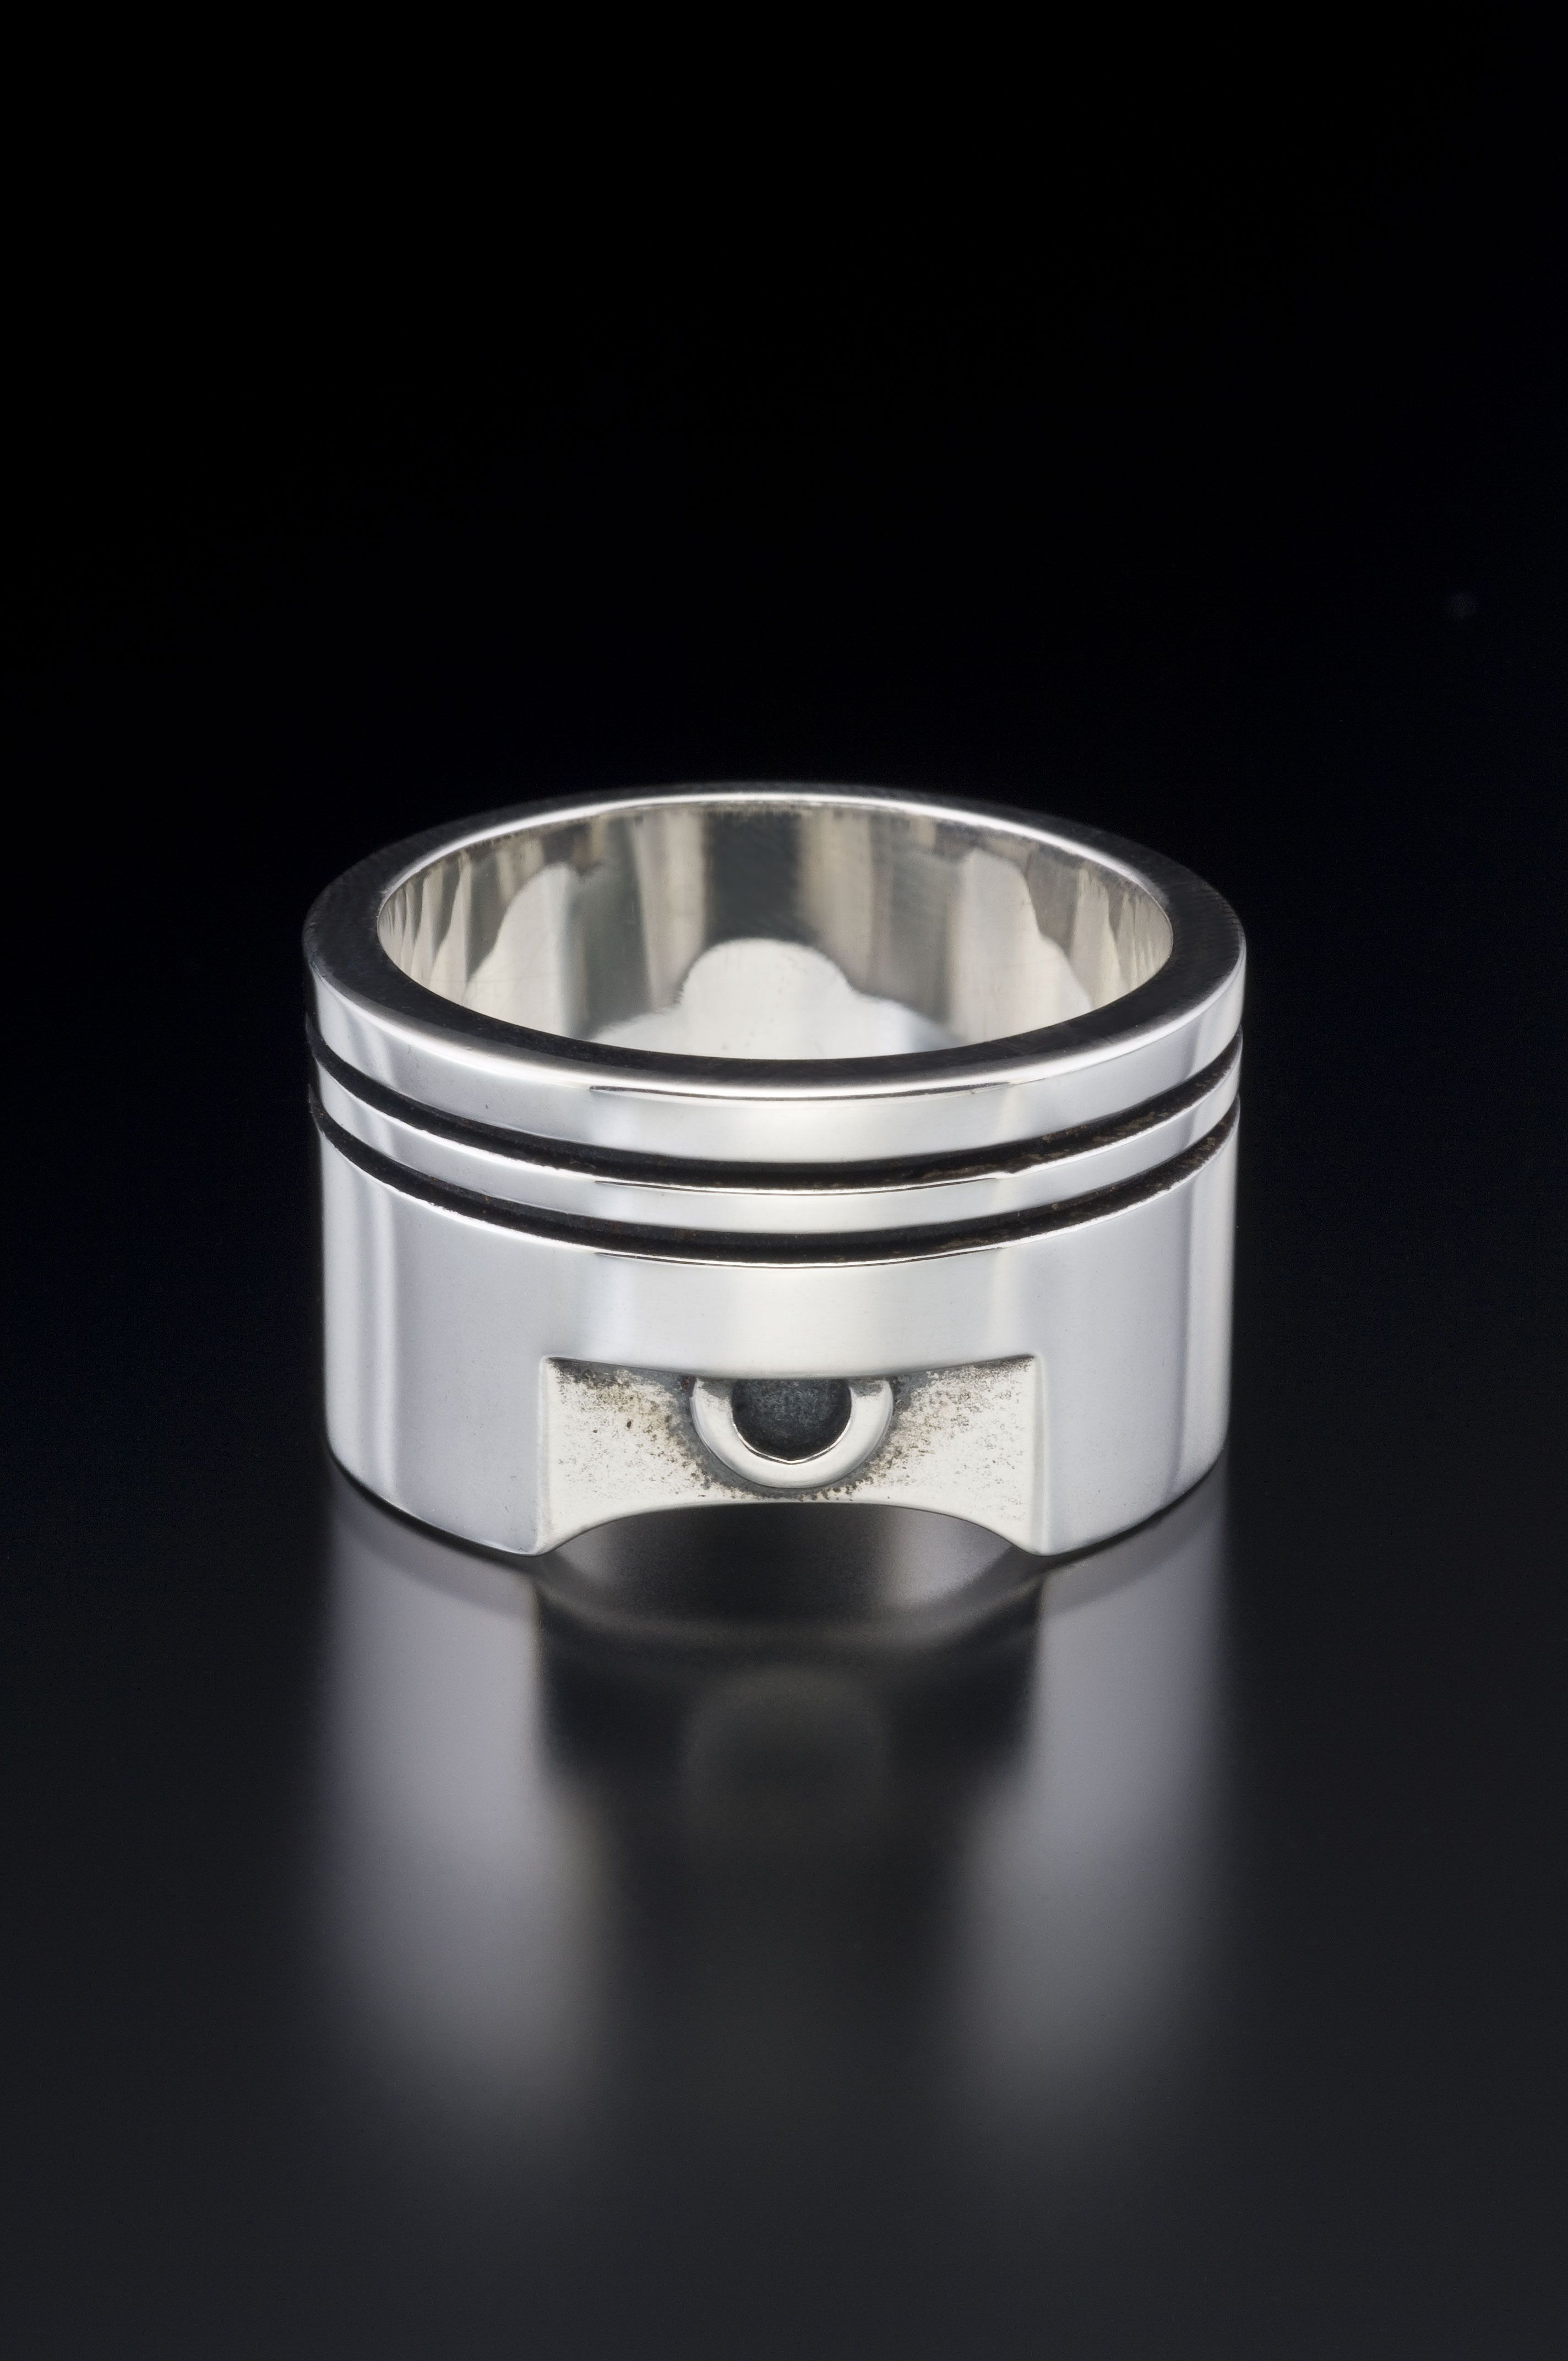 mechanic wedding ring WRENCH WEDDING BAND with Genuine Sapphire A real wedding ring Wedding Wedding ring and This is awesome